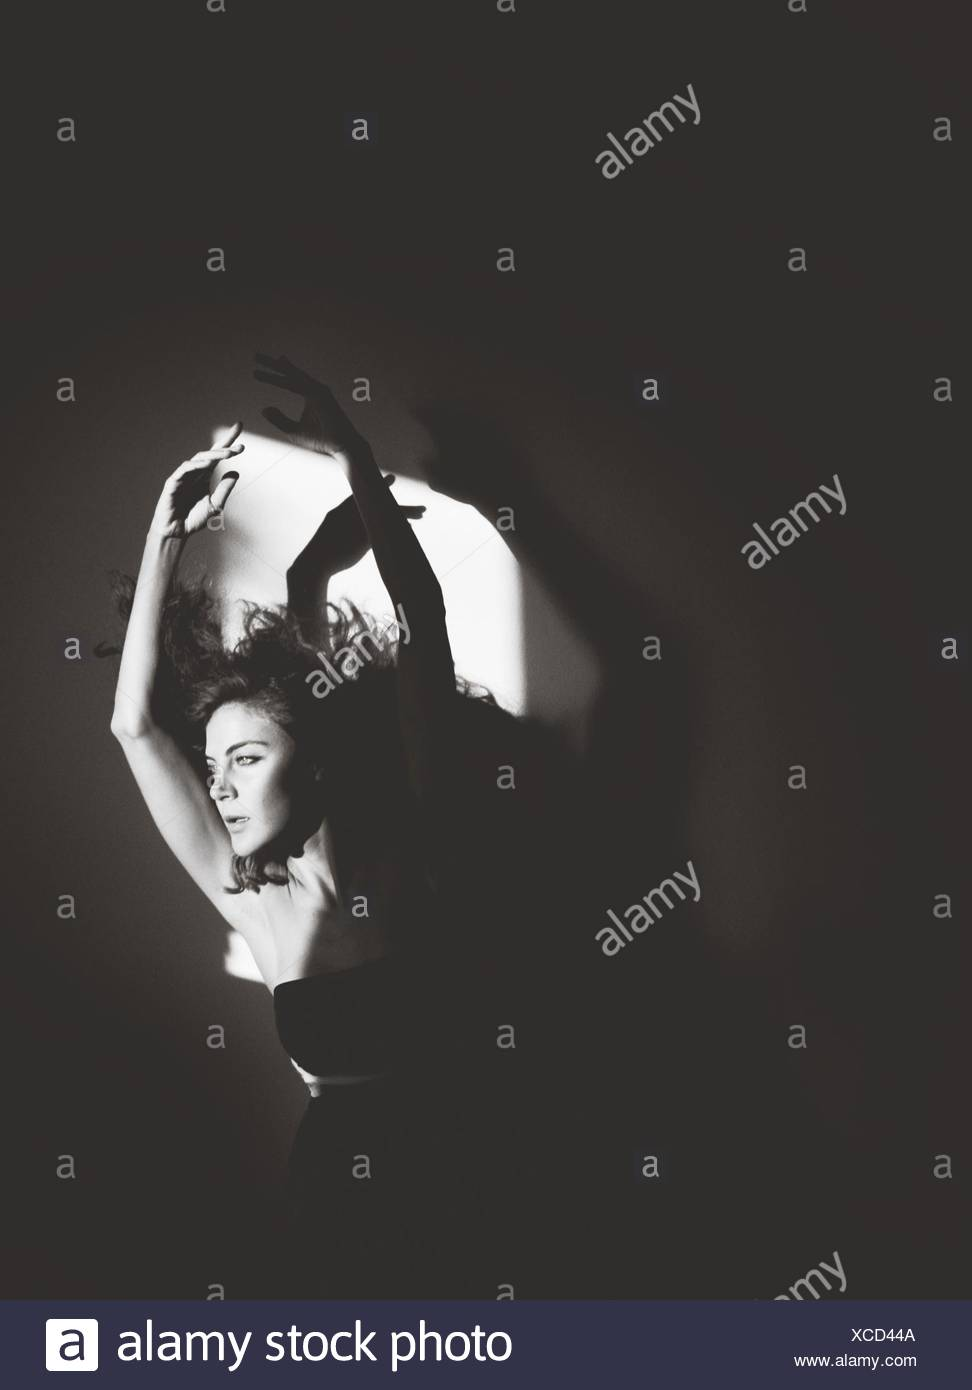 Portrait Of Young Woman With Arms Raised - Stock Image